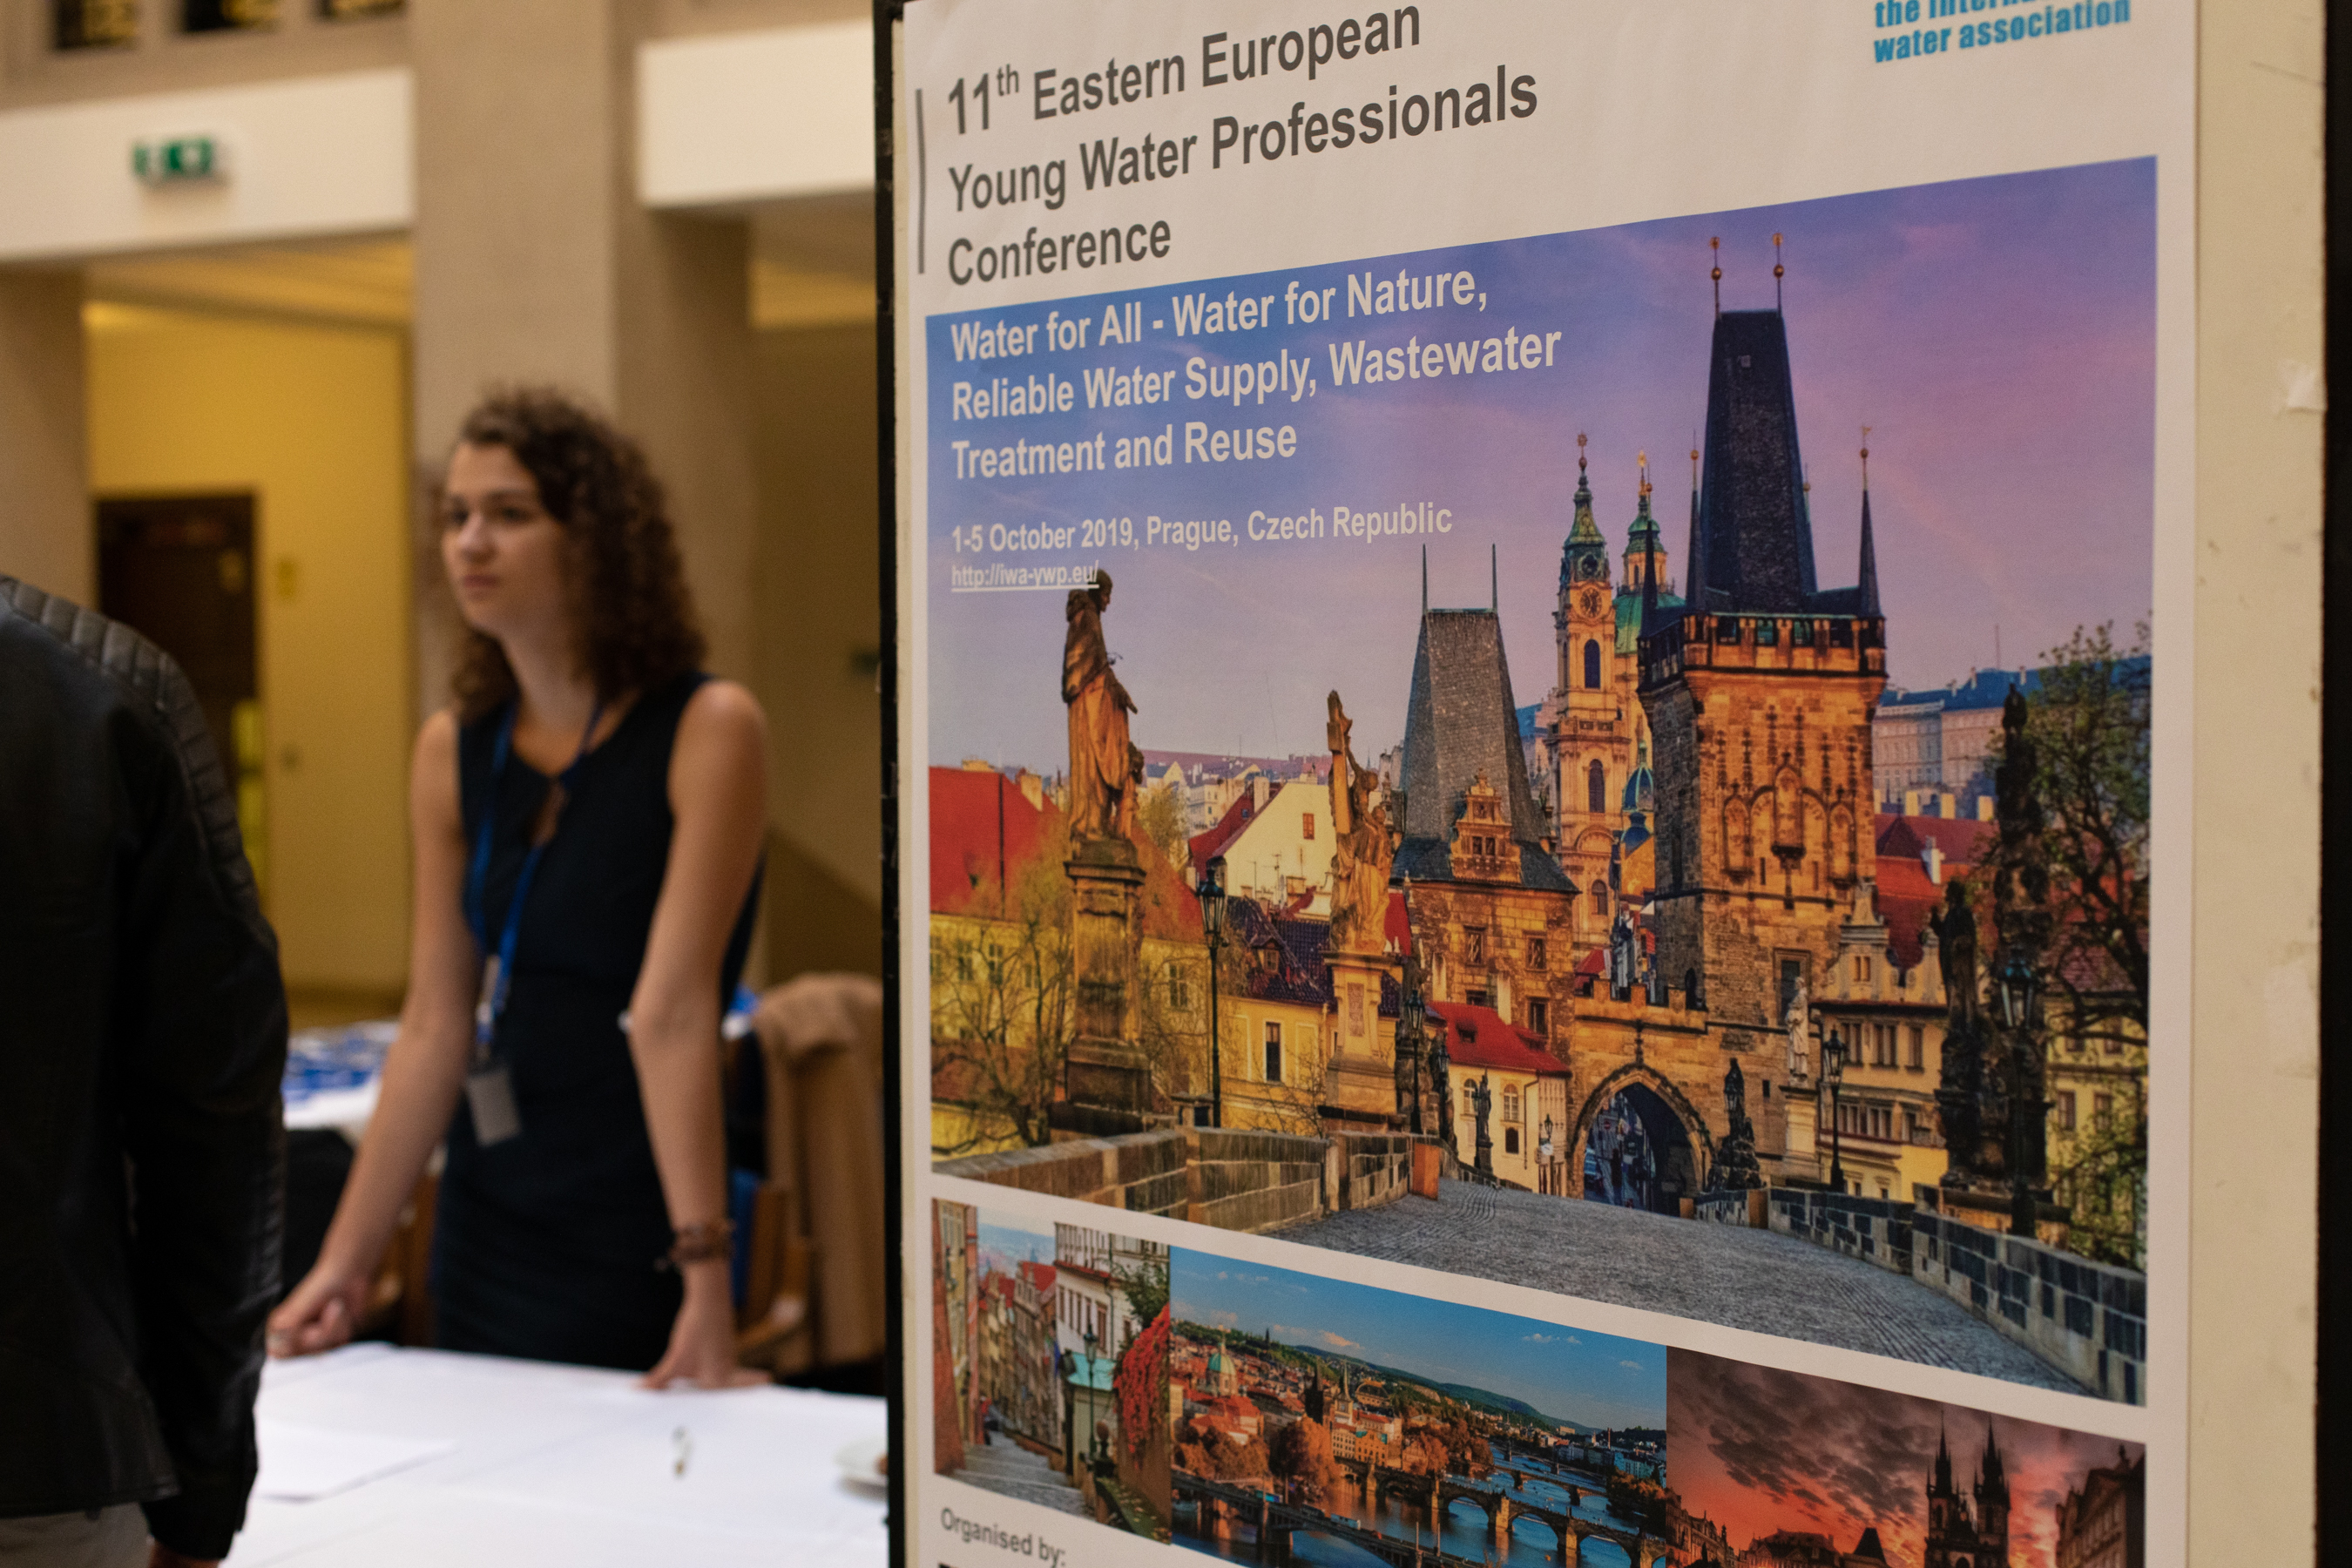 11th Eastern European Young Water Professionals Conference